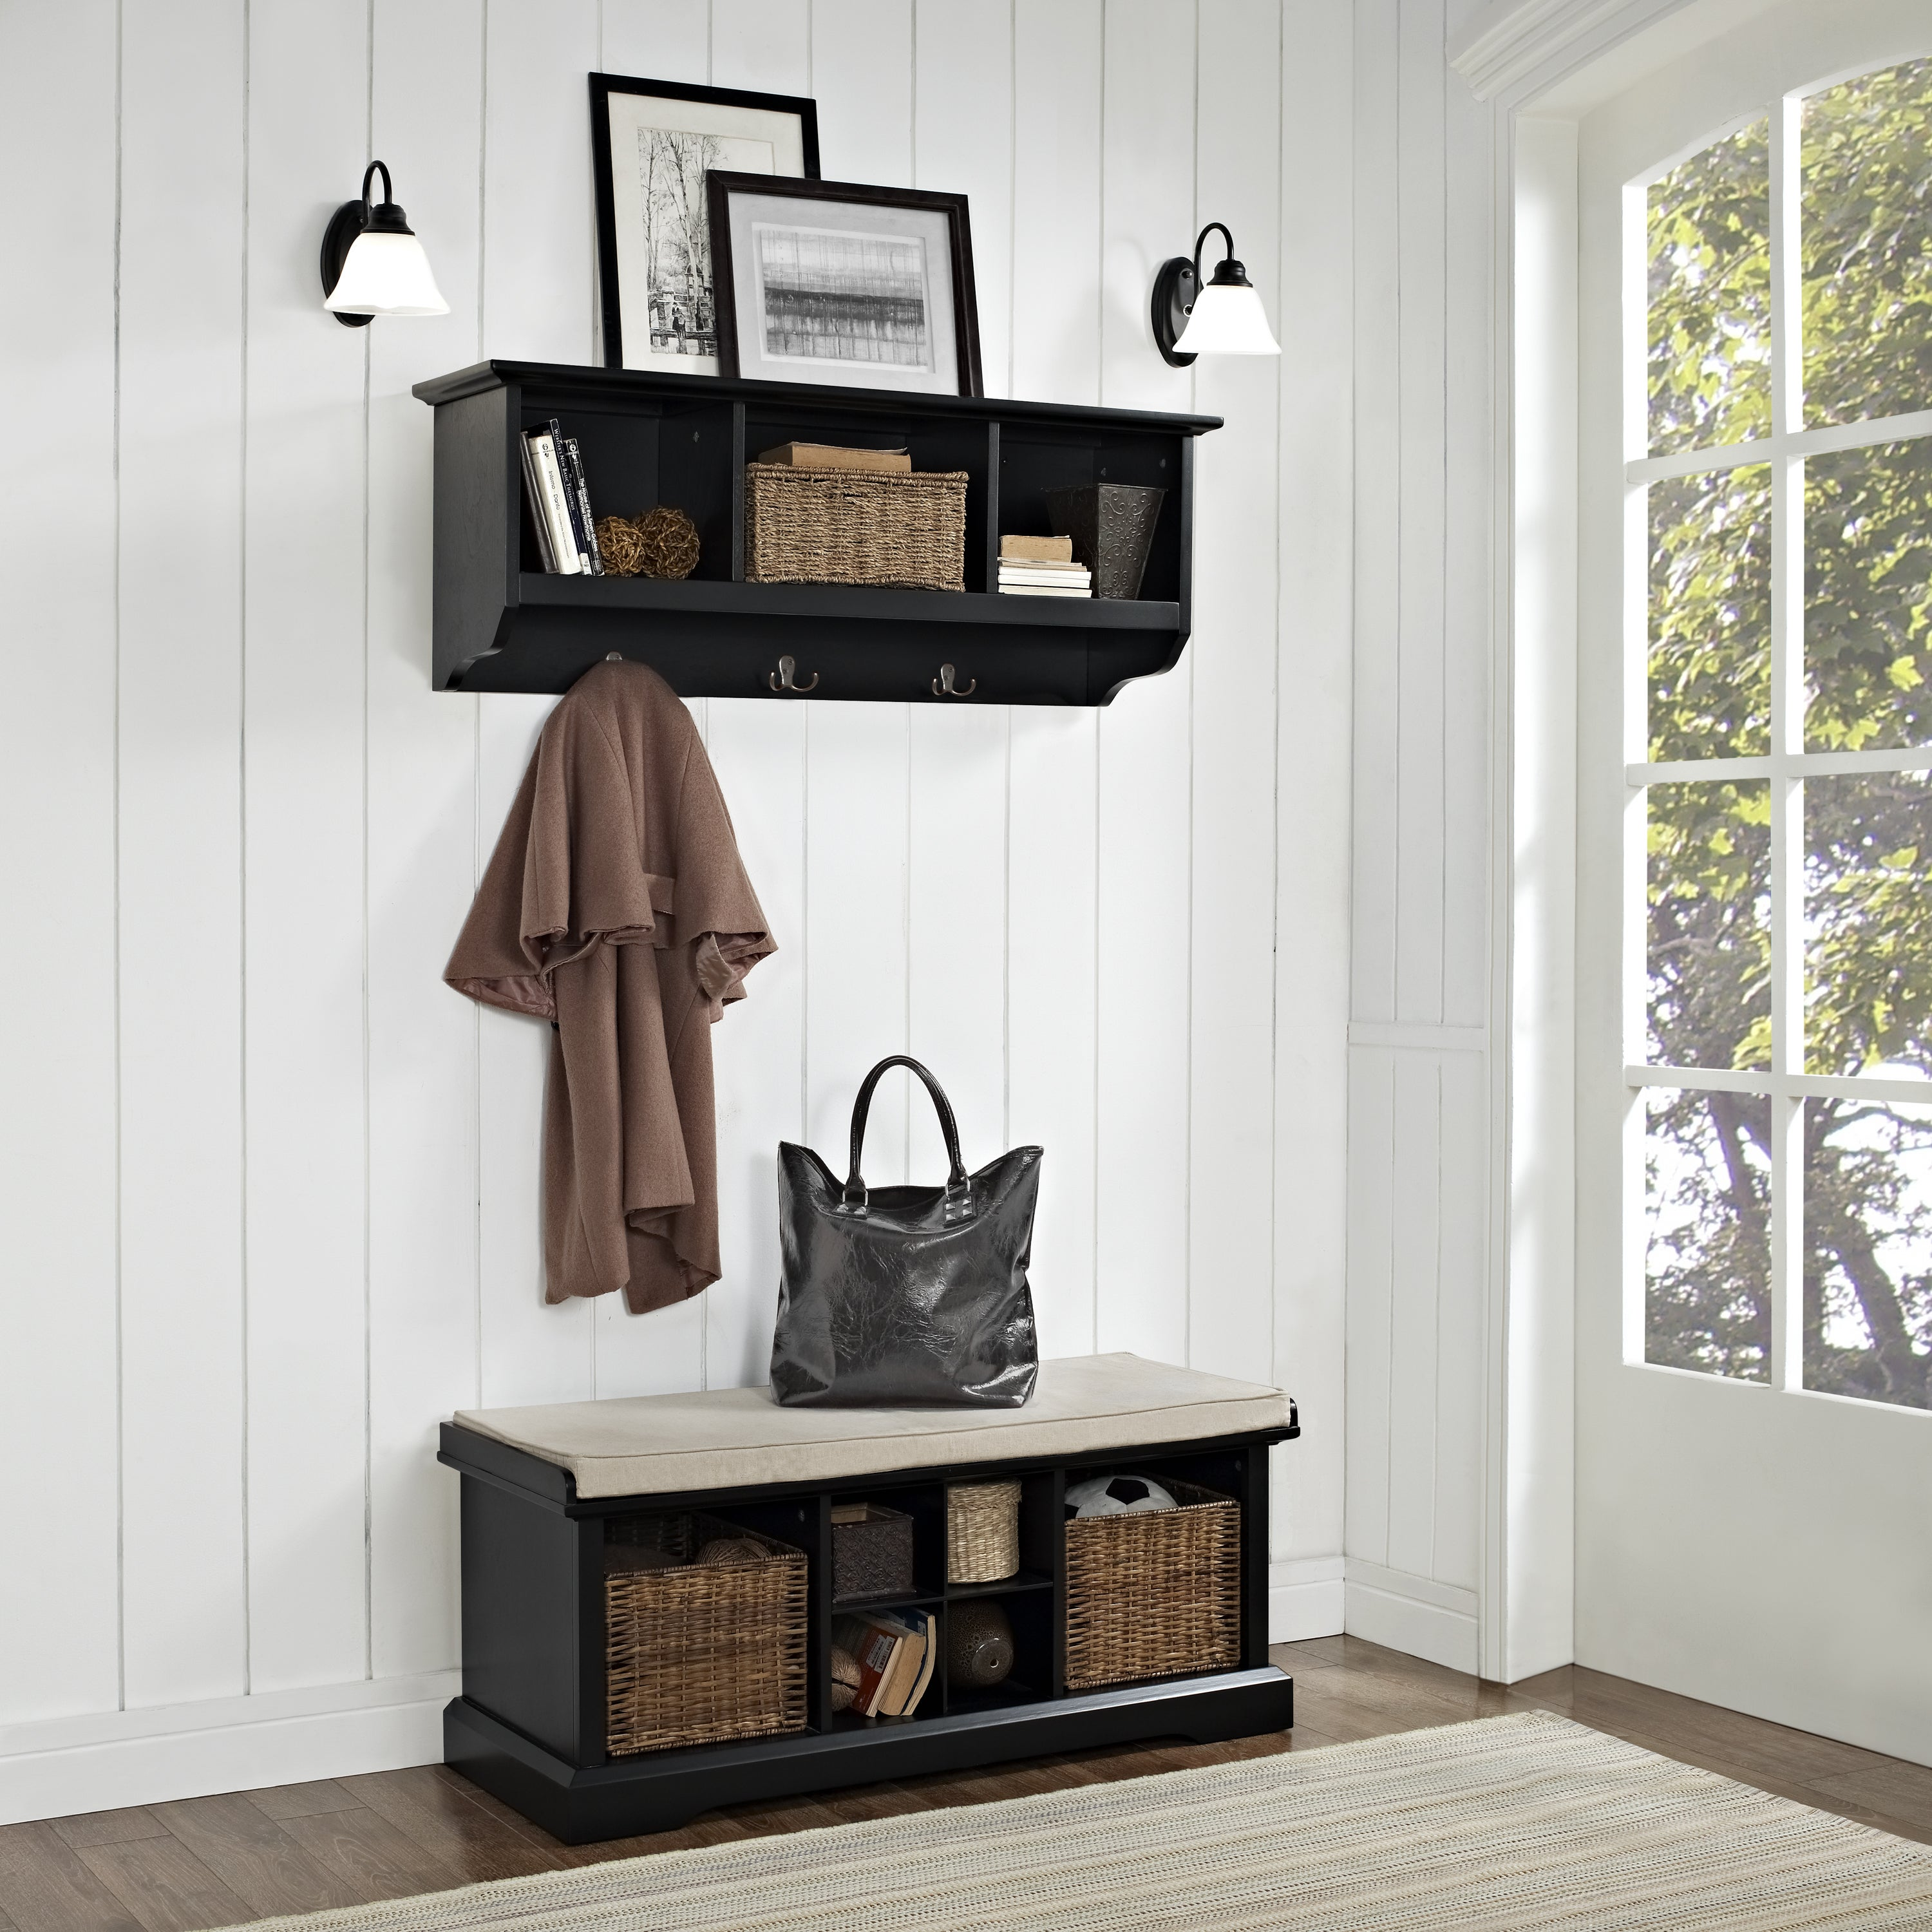 Shop brennan 2 piece entryway bench and shelf set in black free shipping today overstock com 16047297